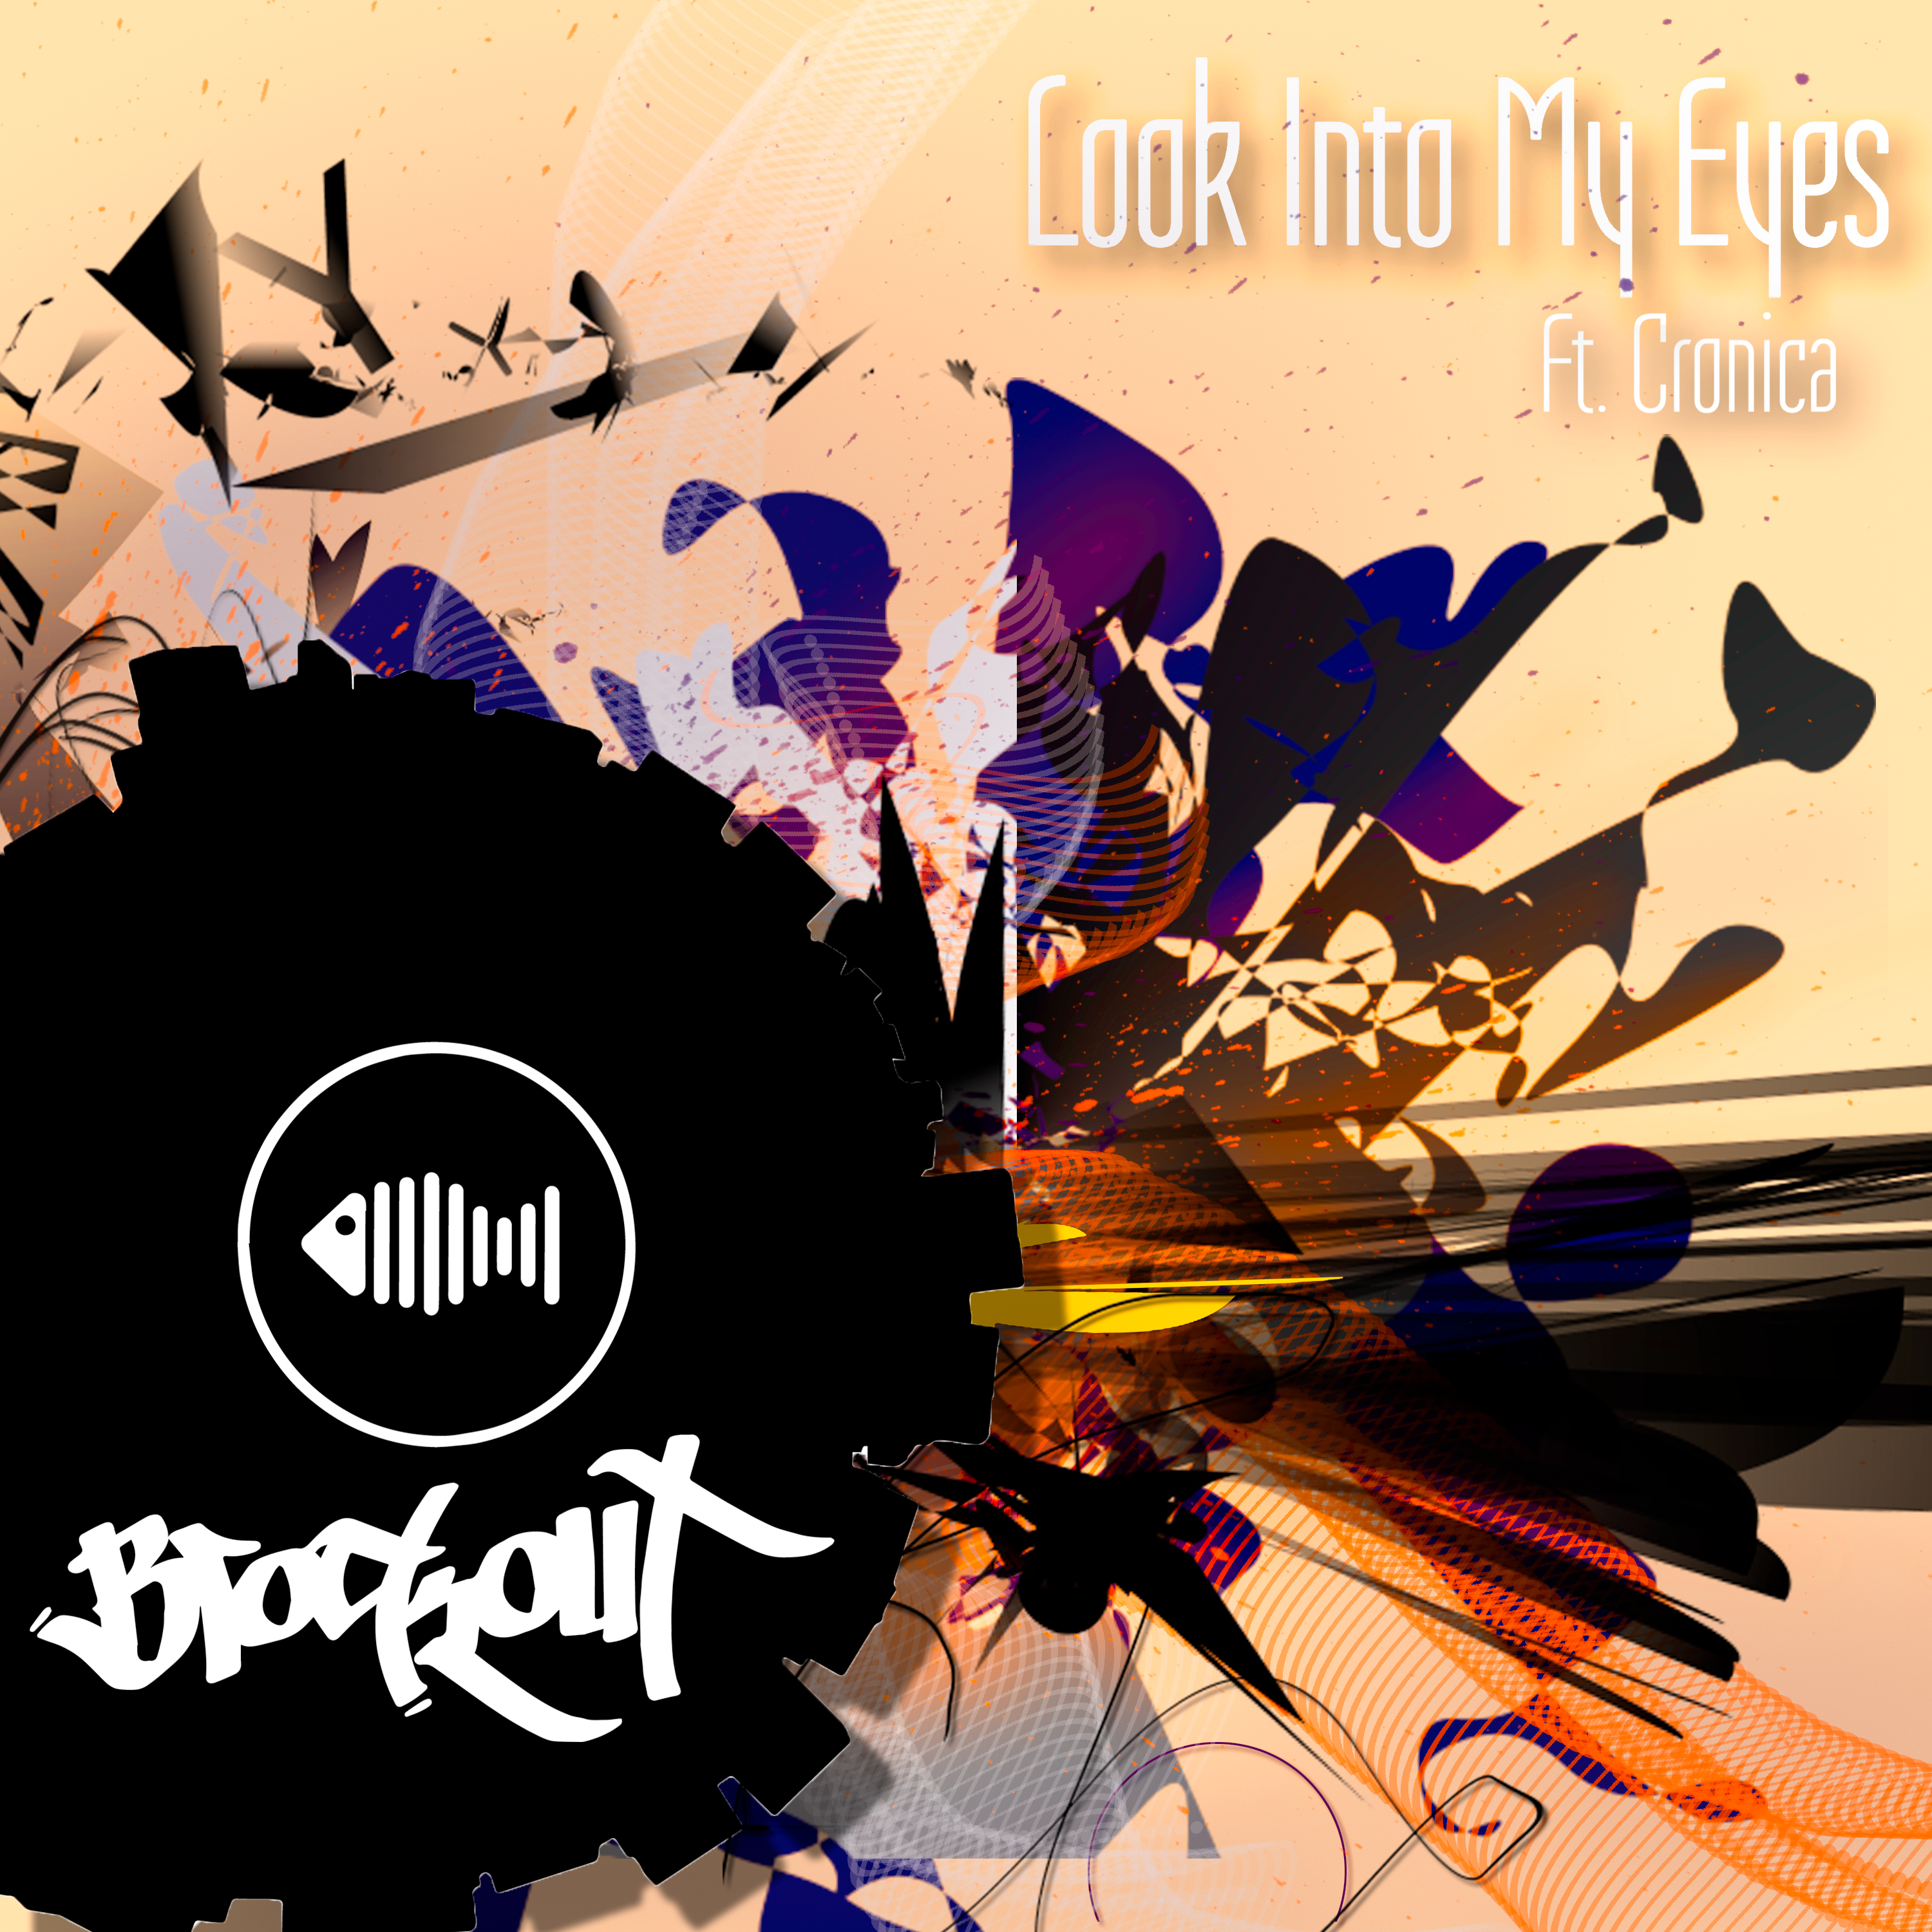 BTR008 - Brockout - Look Into My Eyes EP ft. Chronica